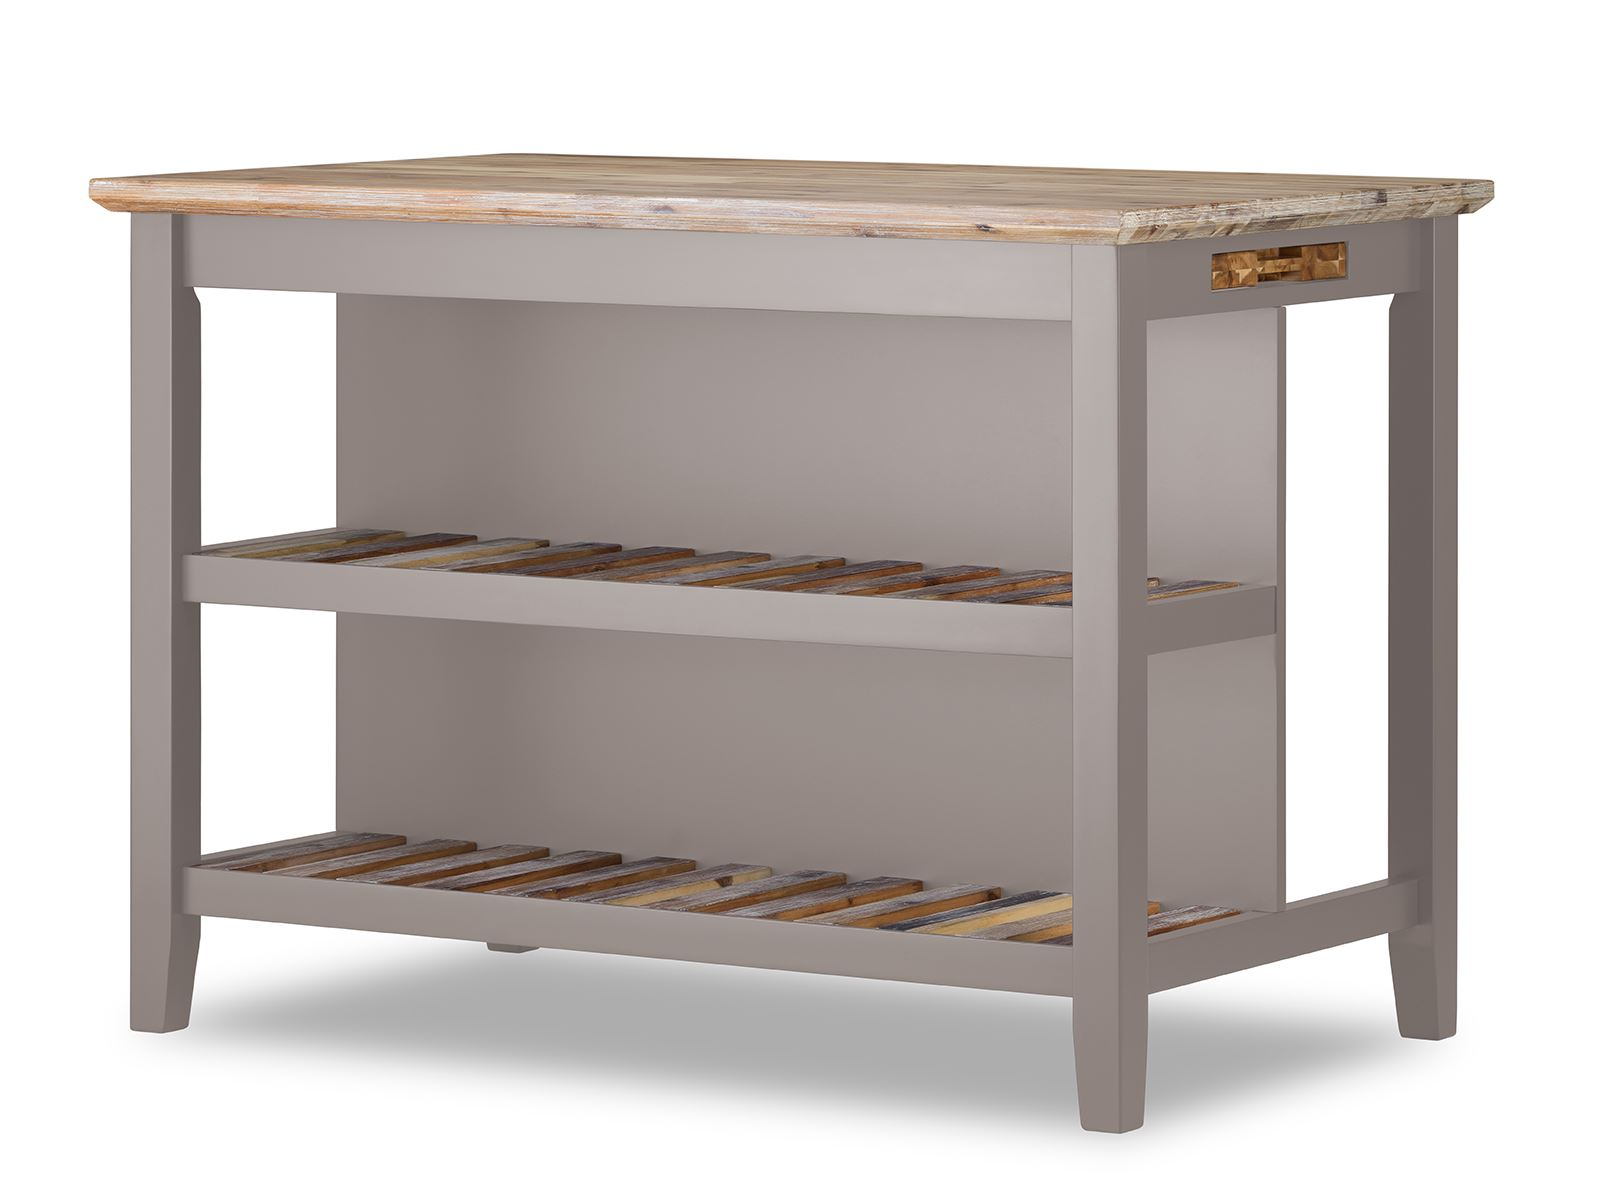 Wondrous Details About Florence Breakfast Bar With 2 Large Shelves Small Kitchen Island With Storage Dailytribune Chair Design For Home Dailytribuneorg